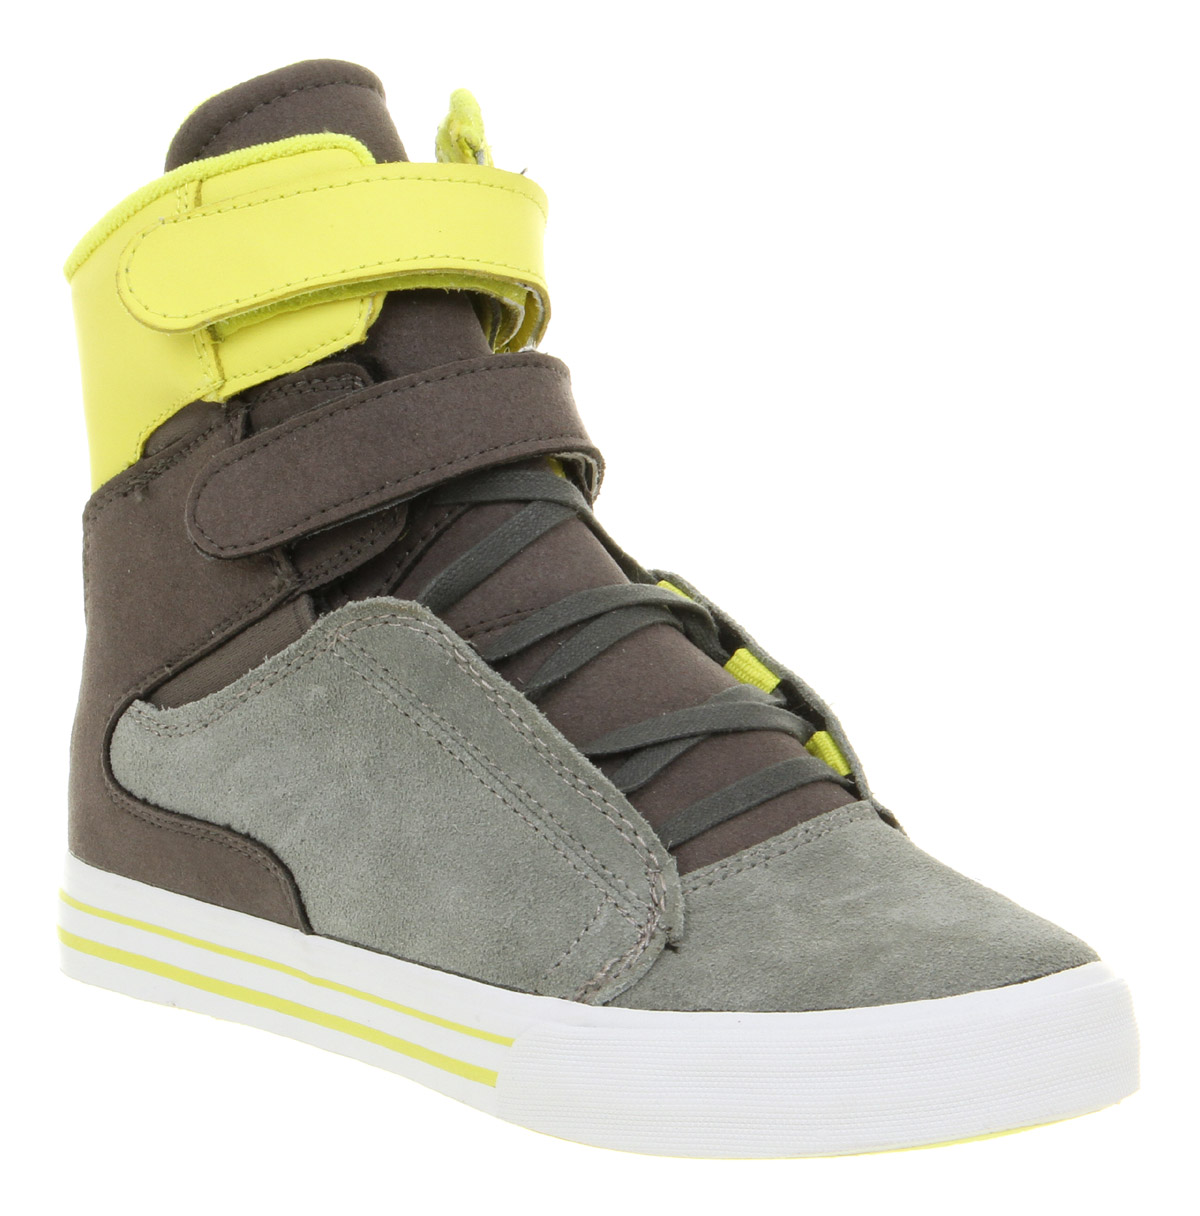 c96bb087cfac ... SUPRA Shoes Official Show Enlarged Preview ...